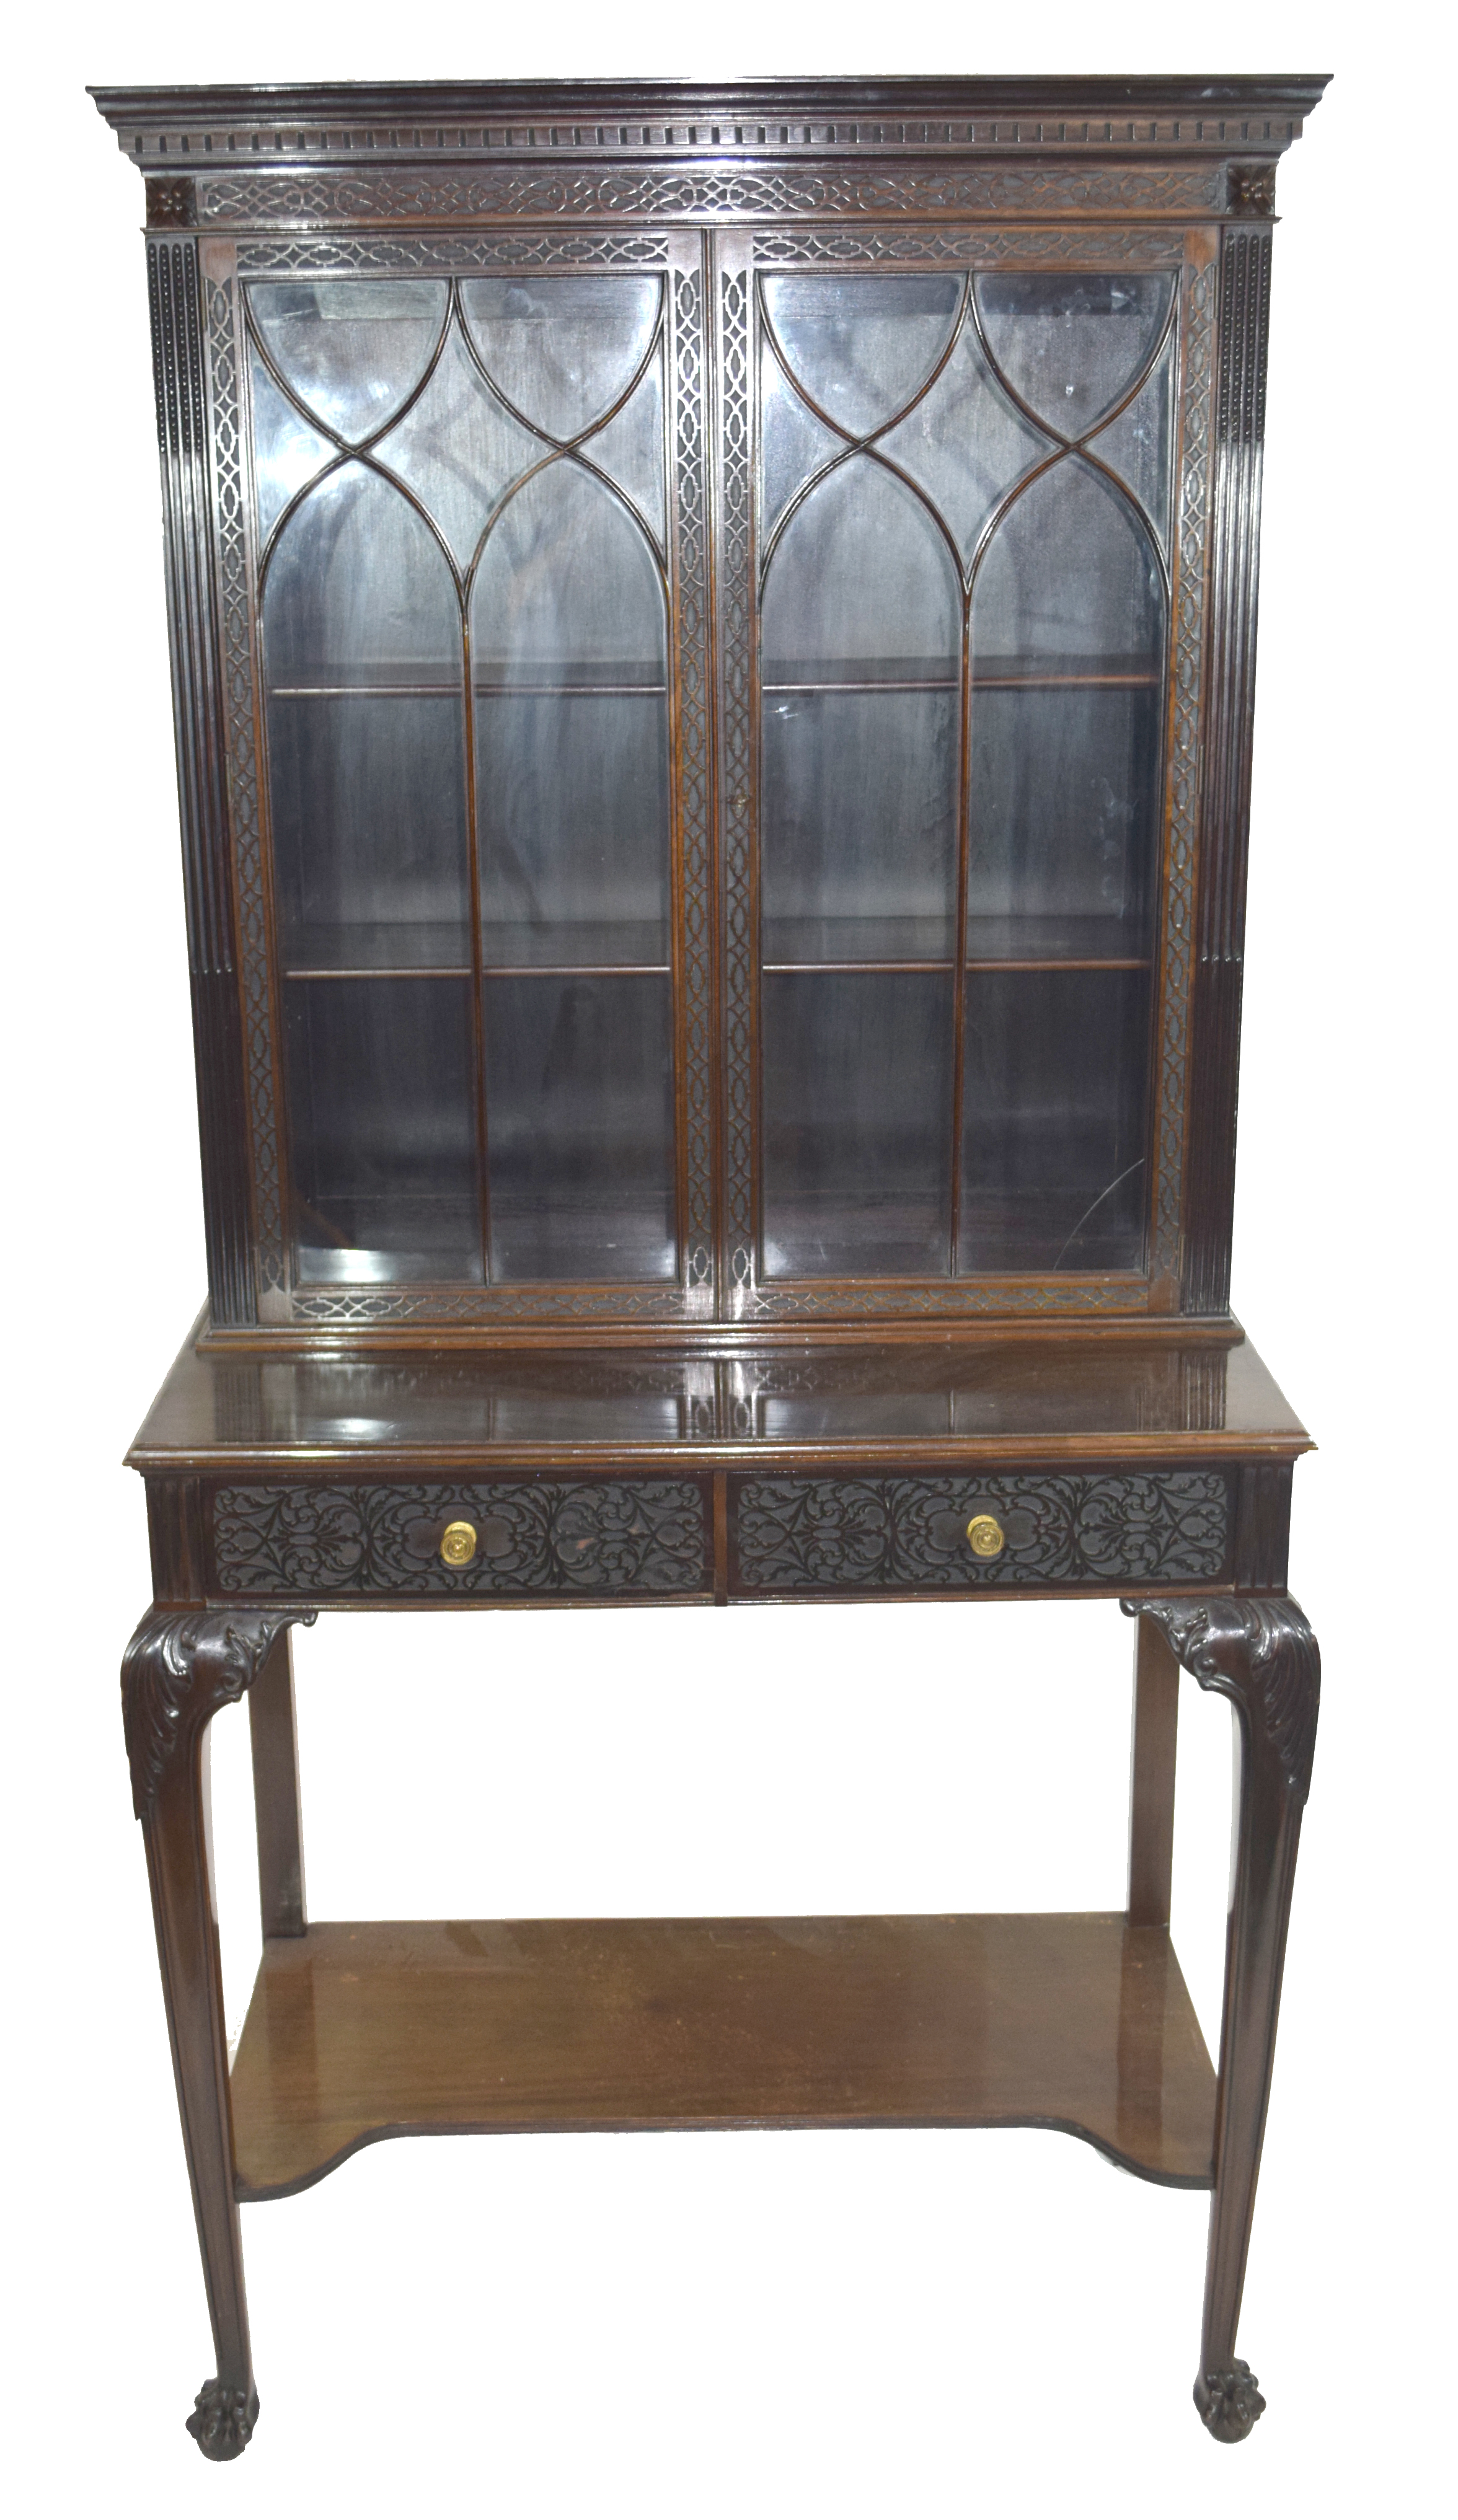 Edwardian mahogany side cabinet with shaped cornice over a top section with two glazed doors and